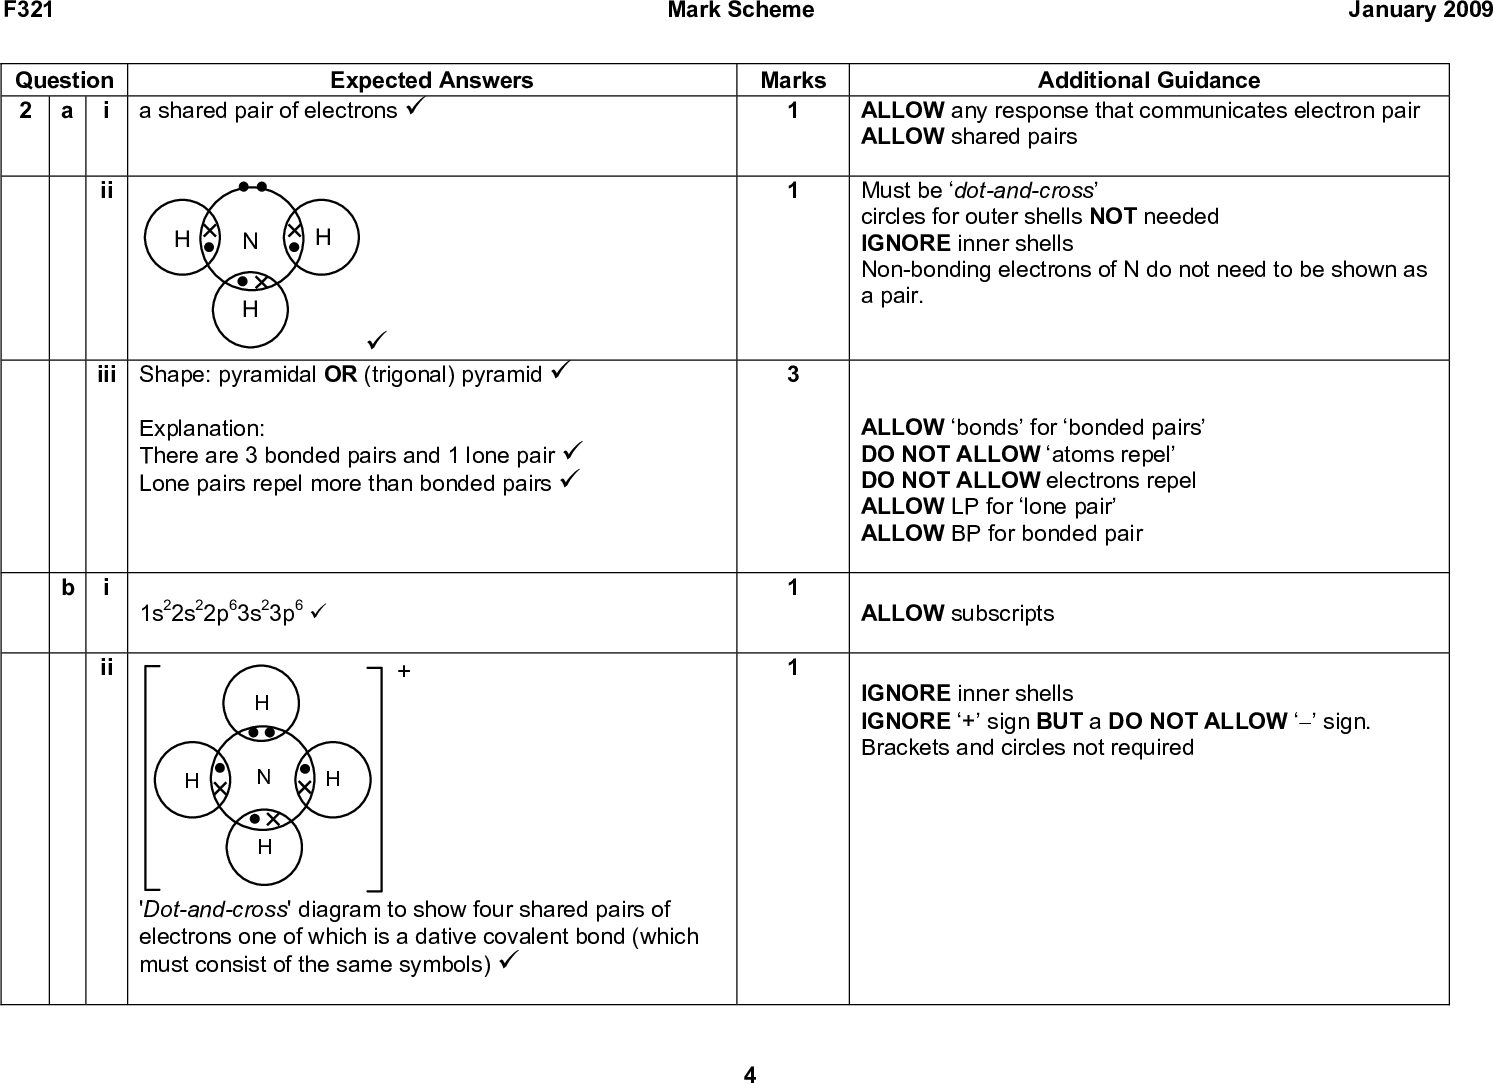 January 2009 Additional Guidance ALLOW any response that communicates electron pair ALLOW shared pairs Must be dot-and-cross circles for outer shells NOT needed IGNORE inner shells Non-bonding electrons of N do not need to be shown as a pair. ALLOW bonds for bonded pairs DO NOT ALLOW atoms repel DO NOT ALLOW electrons repel ALLOW LP for lone pair ALLOW BP for bonded pair ALLOW subscripts IGNORE inner shells IGNORE + sign BUT a DO NOT ALLOWsign. Brackets and circles not required F321 Question 2 a i a shared pair of electrons (cid:57) Expected Answers Mark Scheme Marks ii (cid:57) iii Shape: pyramidal OR (trigonal) pyramid (cid:57) Explanation: There are 3 bonded pairs and 1 lone pair (cid:57) Lone pairs repel more than bonded pairs (cid:57) 1s22s22p63s23p6 (cid:57) ii 'Dot-and-cross' diagram to show four shared pairs of electrons one of which is a dative covalent bond (which must consist of the same symbols) (cid:57)<br />  F321 Question iii iv Expected Answers tetrahedral (cid:57) 109.5 (cid:57) ions OR electrons cannot move in a solid (cid:57) ions can move OR are mobile in solution (cid:57) i 2NH3 + H2SO4 (cid:198) (NH4)2SO4 (cid:57) ii when the H+ in an acid is replaced by a metal ion OR an ammonium ion OR a + ion (cid:57) iii accepts a proton OR accepts H+ (cid:57) iv 132.1 (cid:57) Total Mark Scheme Marks Additional Guidance ALLOW 109110 January 2009 15 ALLOW ions can move in liquid DO NOT ALLOW ions can move when molten ALLOW 1 mark for: Ions can only move in solution ALLOW 2NH4OH + H2SO4 (cid:198) (NH4)2SO4 + 2H2O ALLOW NH3 + H+ (cid:198) NH4 + ALLOW any correct multiple IGNORE state symbols ALLOW H for H+; ALLOW metal for metal ion i.e.: H in an acid can be replaced by a metal ALLOW donates a lone pair ALLOW removes H+ ALLOW forms OH ions IGNORE units NO OTHER ACCEPTABLE ANSWER<br />